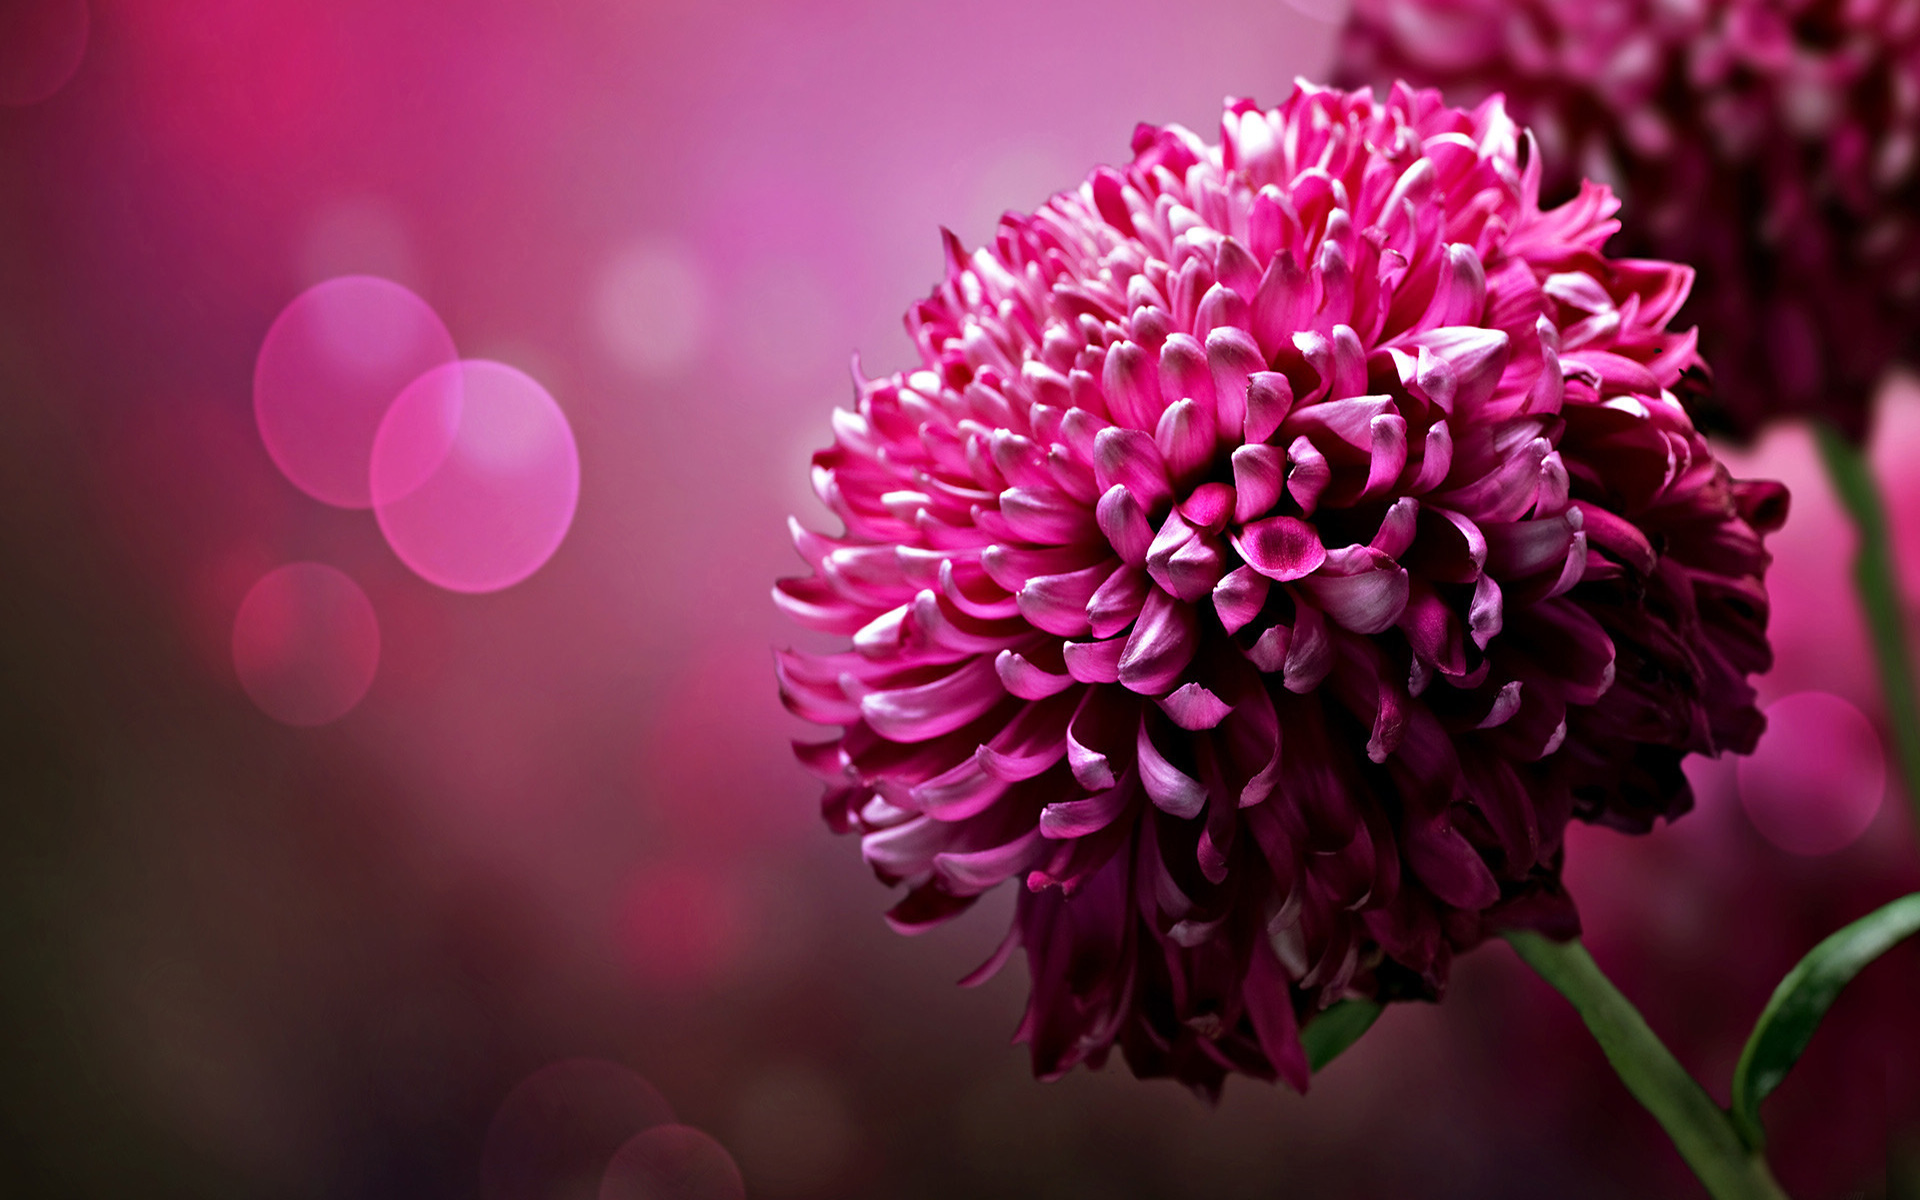 Free wallpaper backgrounds flowers picture royalty free stock Free Pink Flower Wallpaper - WallpaperSafari picture royalty free stock